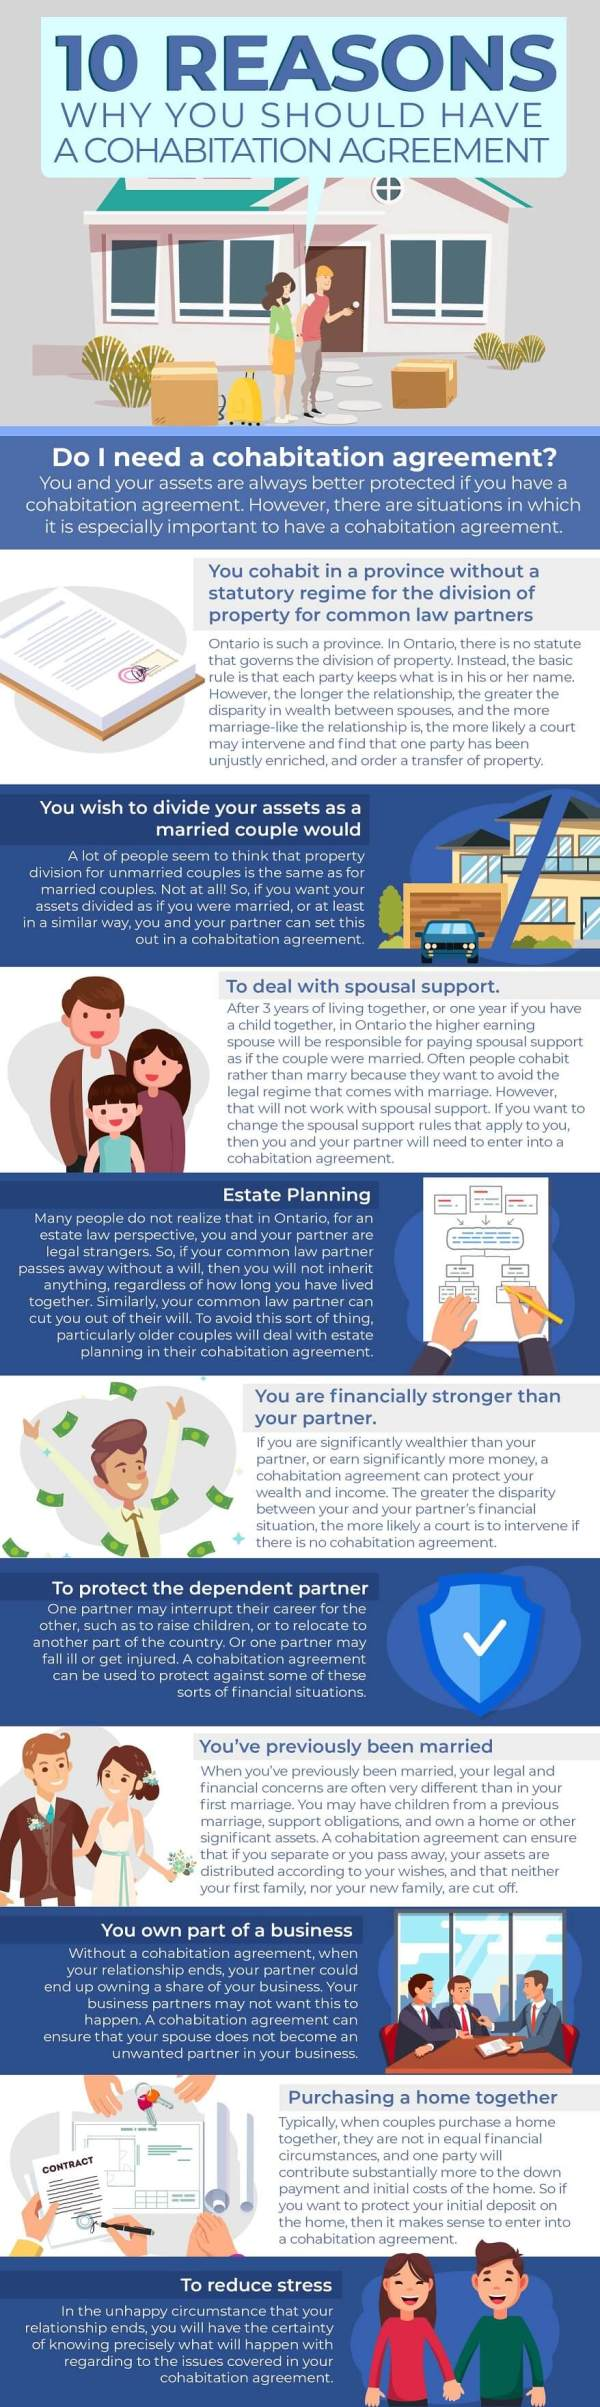 Cohabitation-Infographic